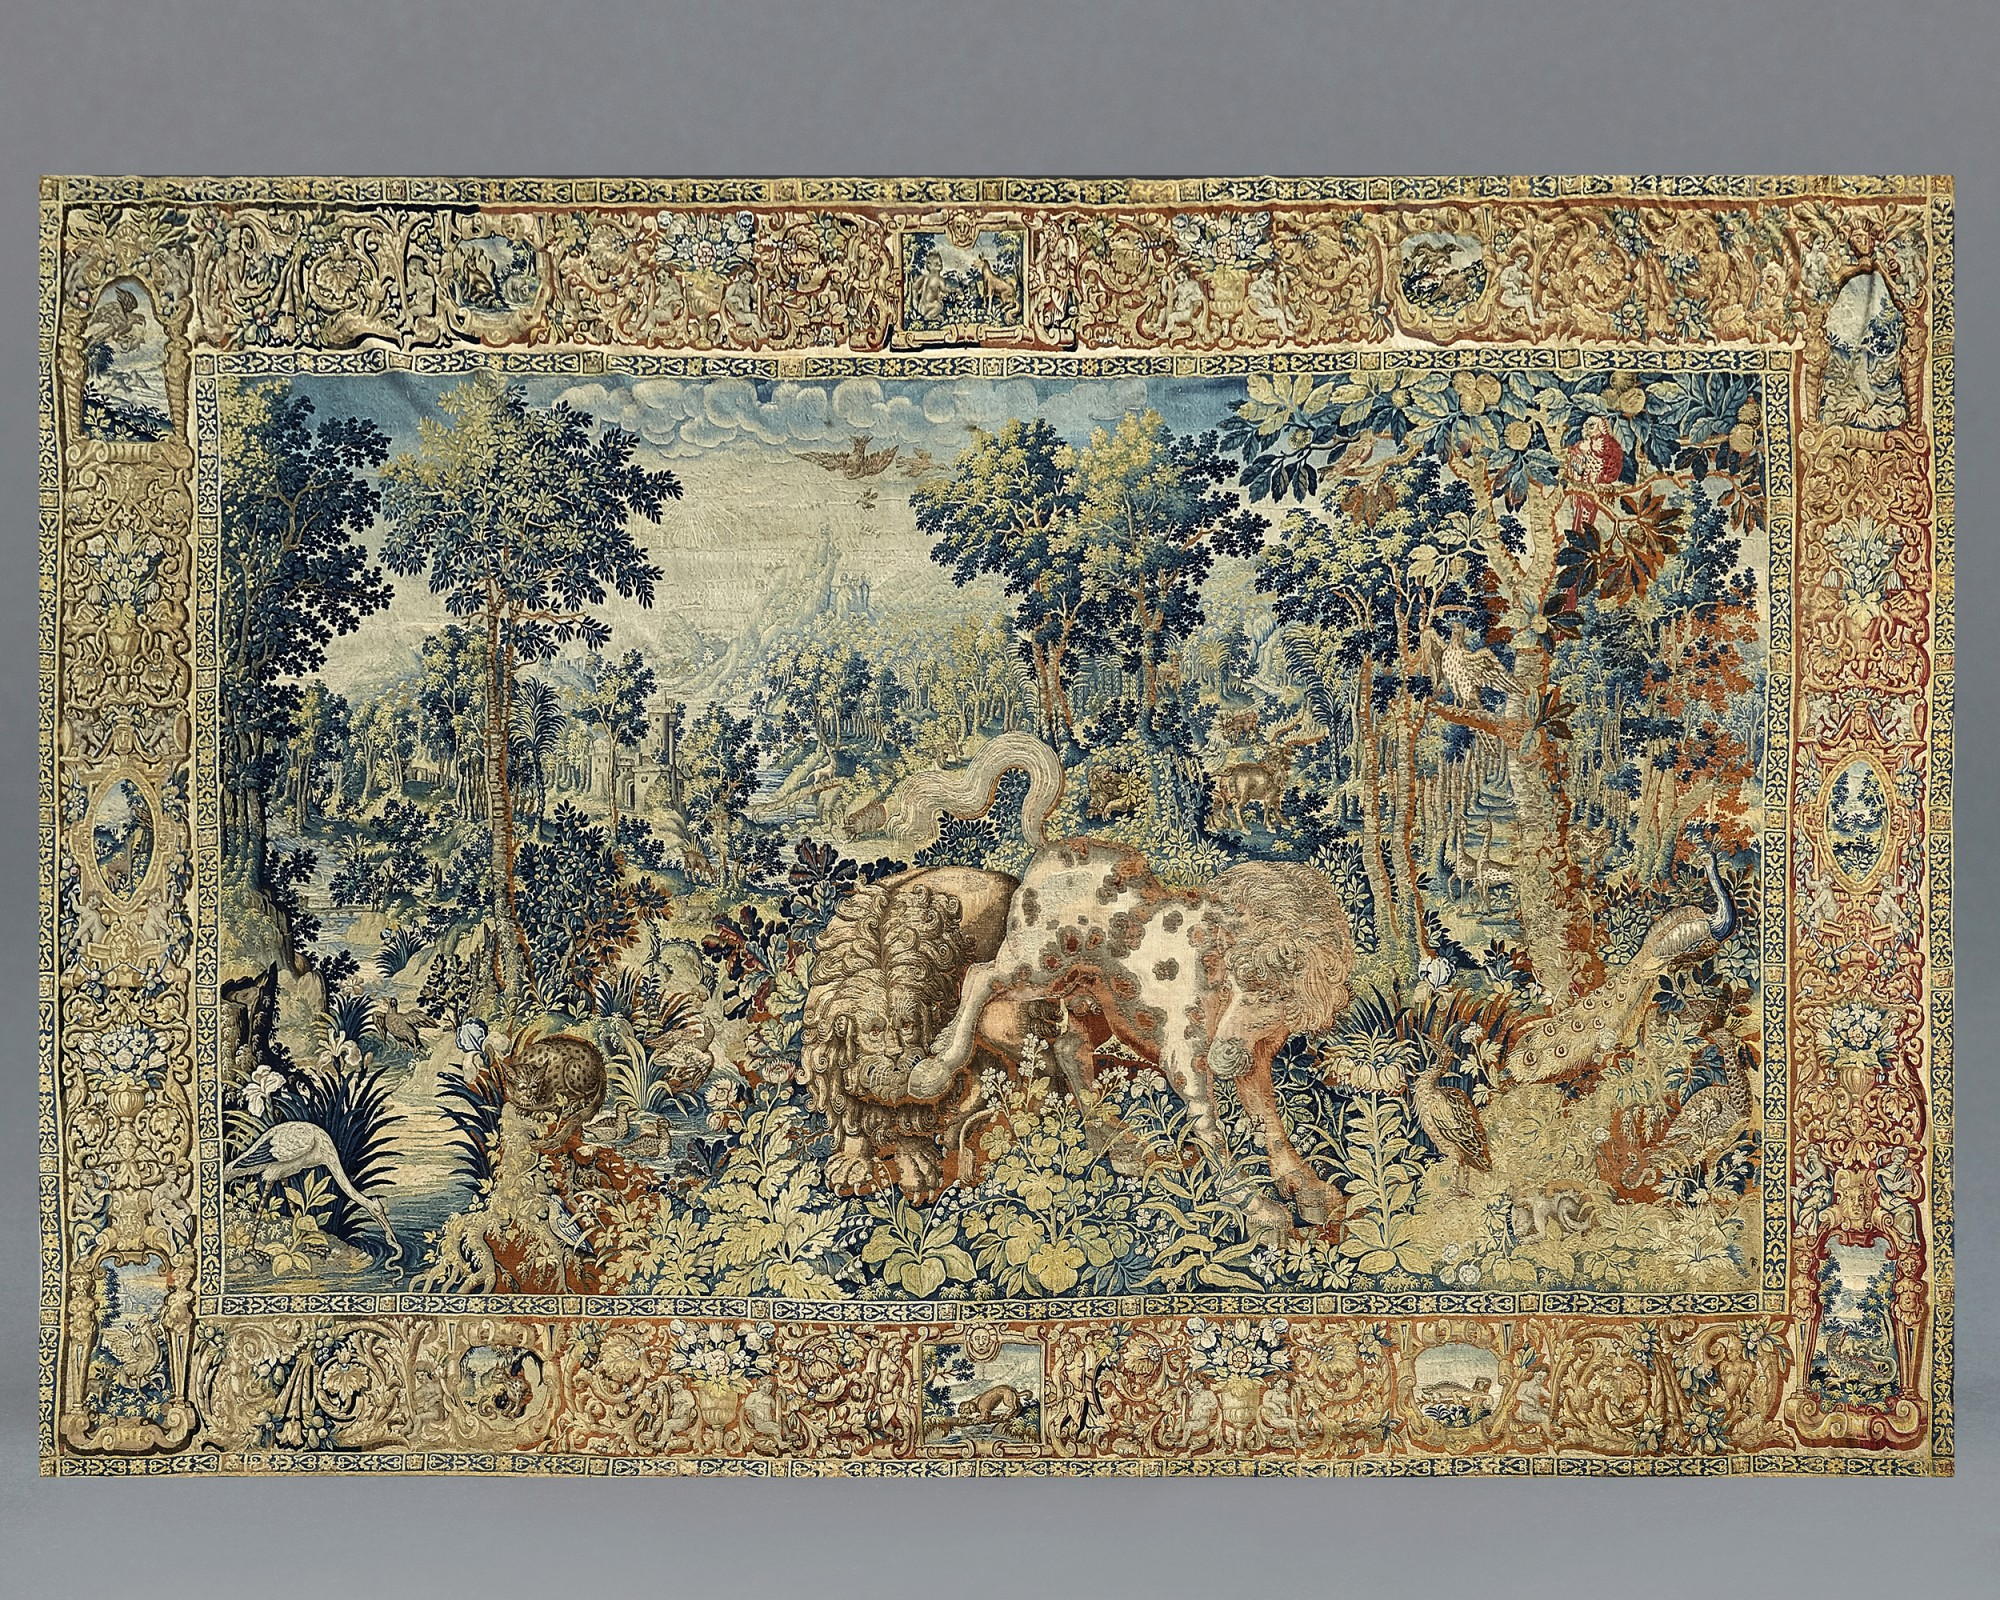 A 'Pugnae Ferarum' Tapestry, Flemish, probably Enghien, second half 16th century